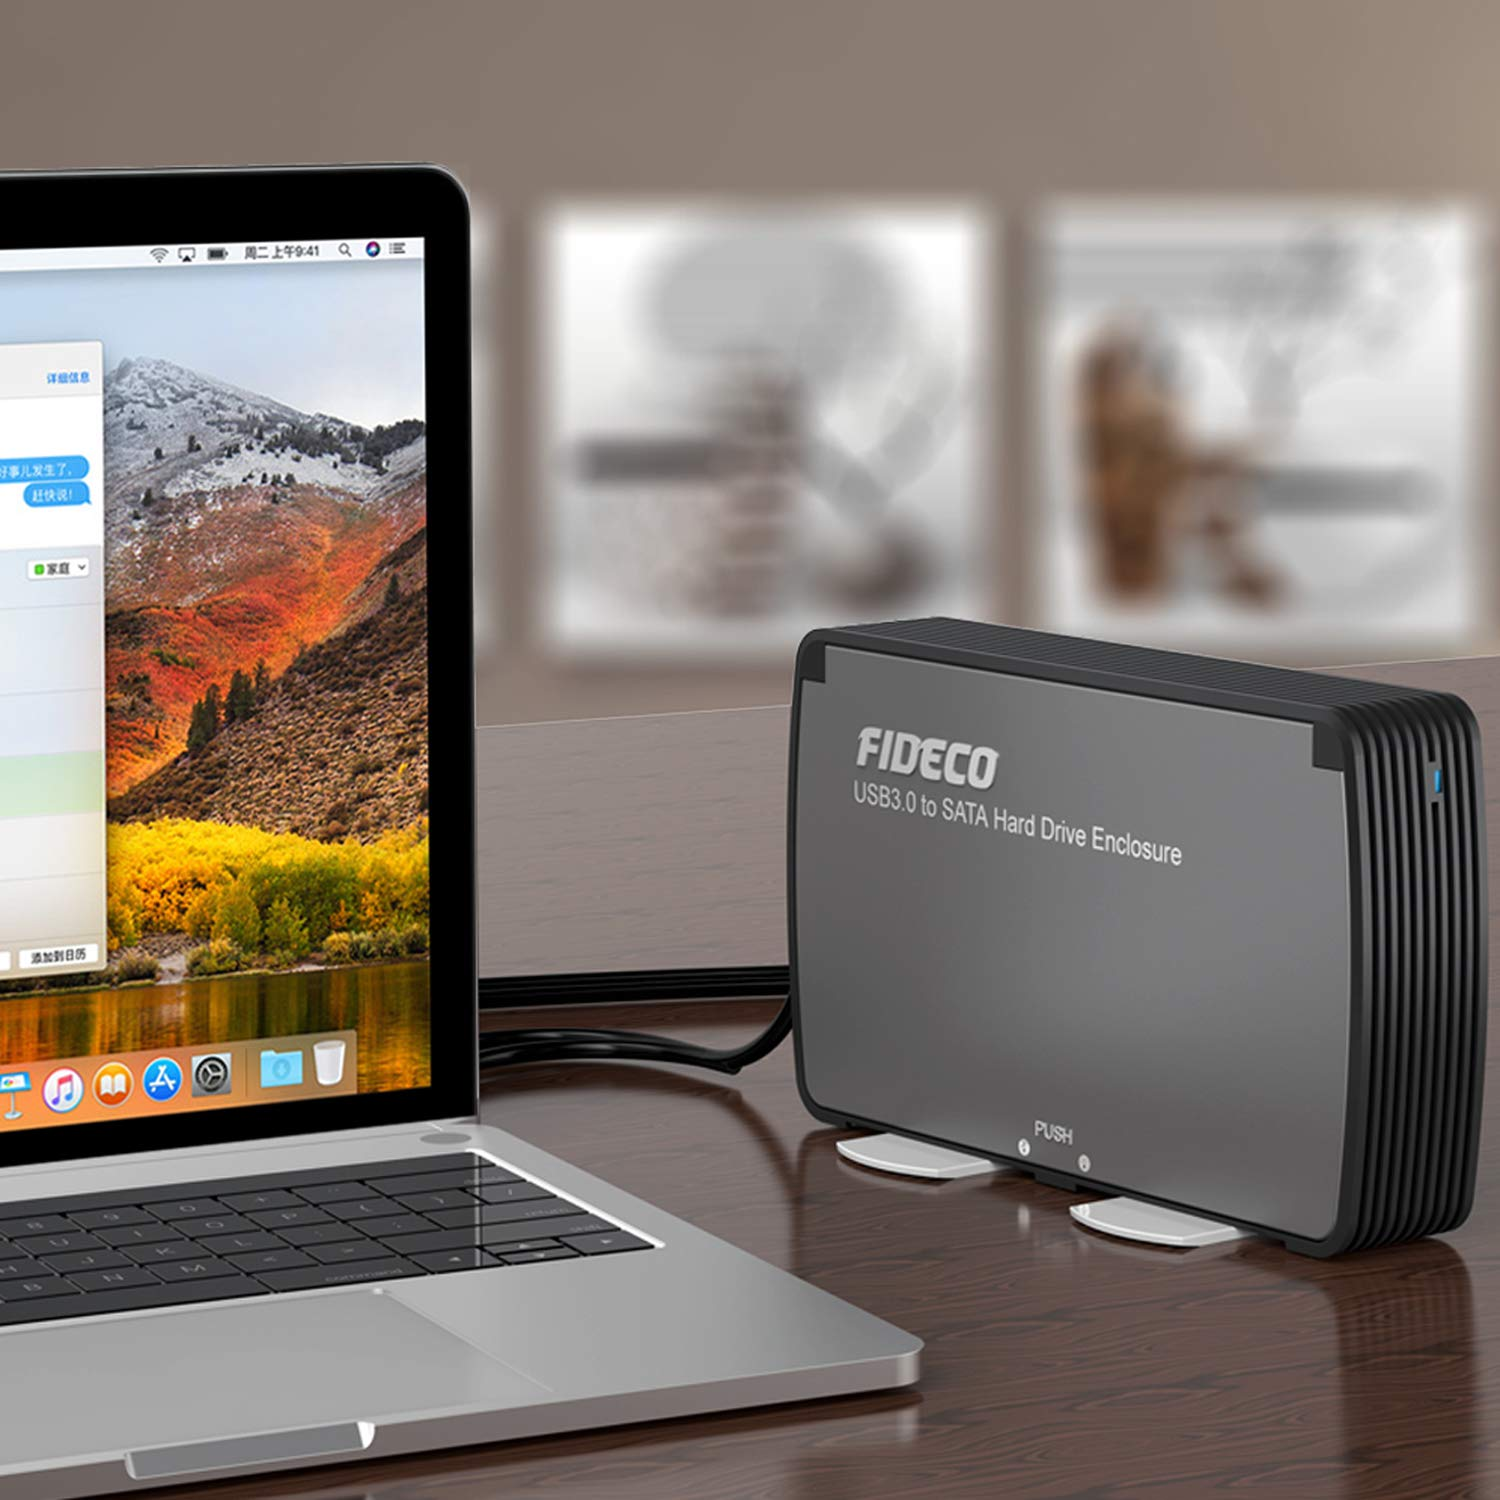 Amazon.com: FIDECO Disco Duro Externo Recinto, USB 3.0 SATA ...